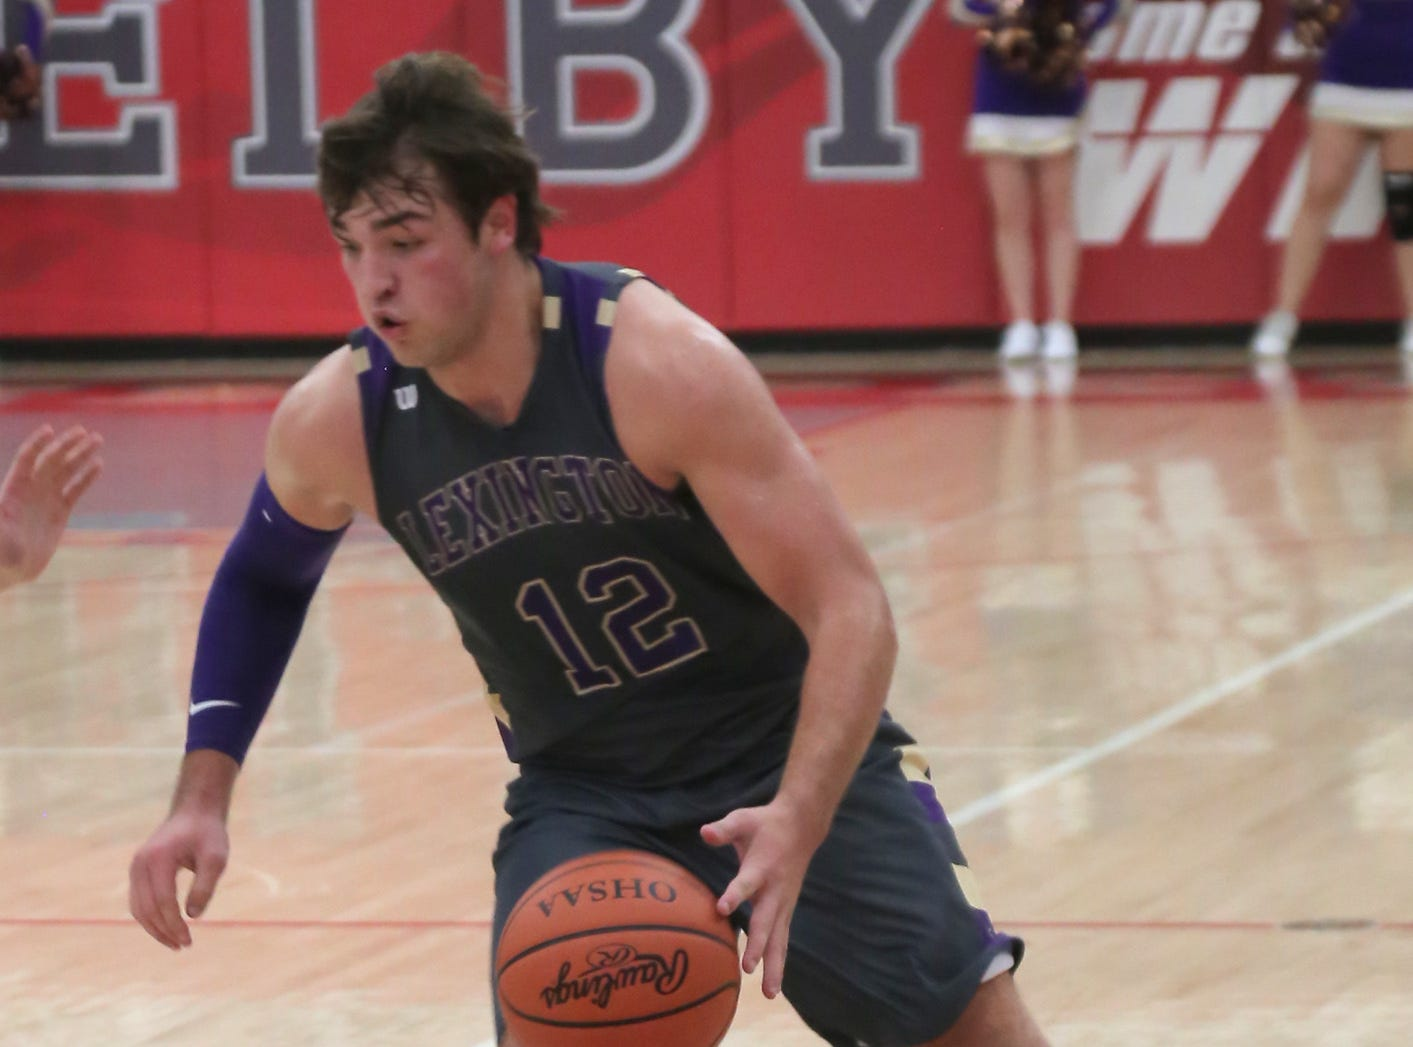 Lexington's Ben Vore dribbles the ball down the court while playing at Shelby on Saturday.